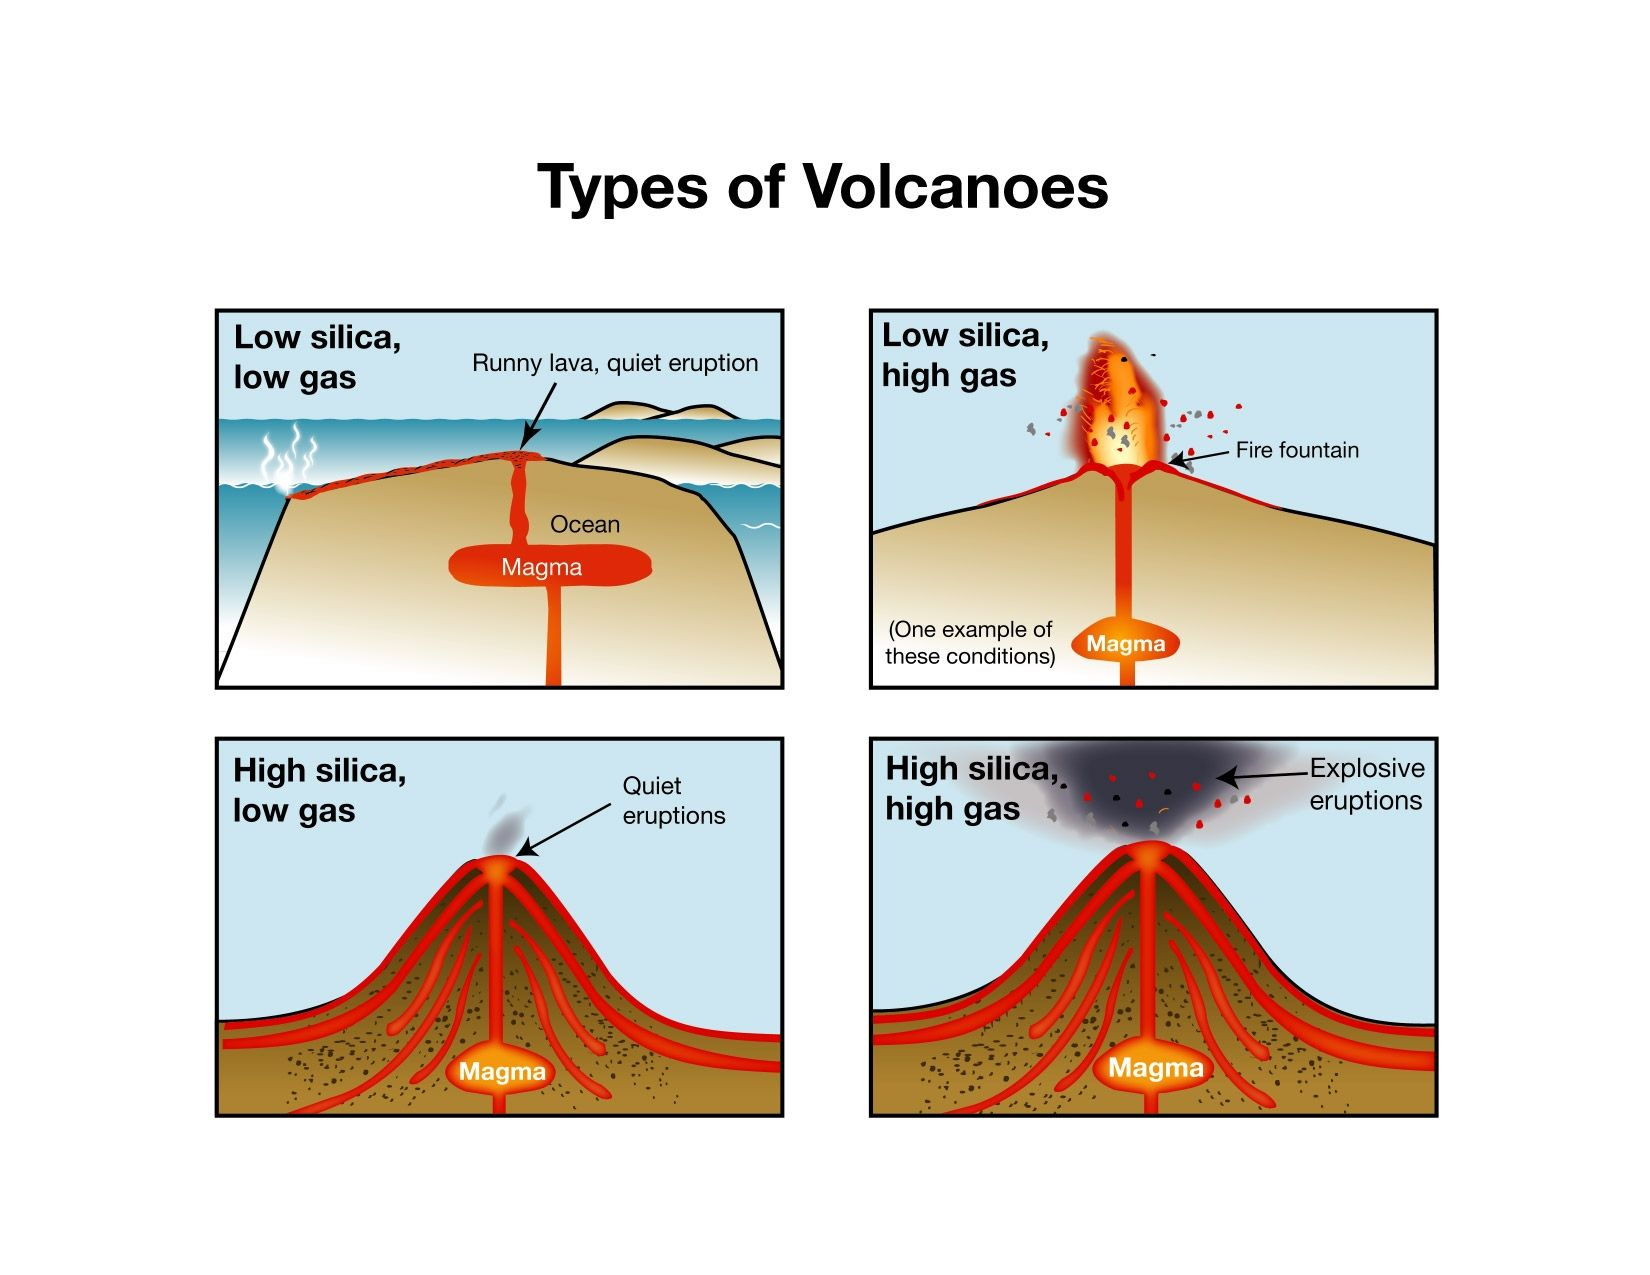 This Is A Picture Showing Different Types Of Volcanoes And